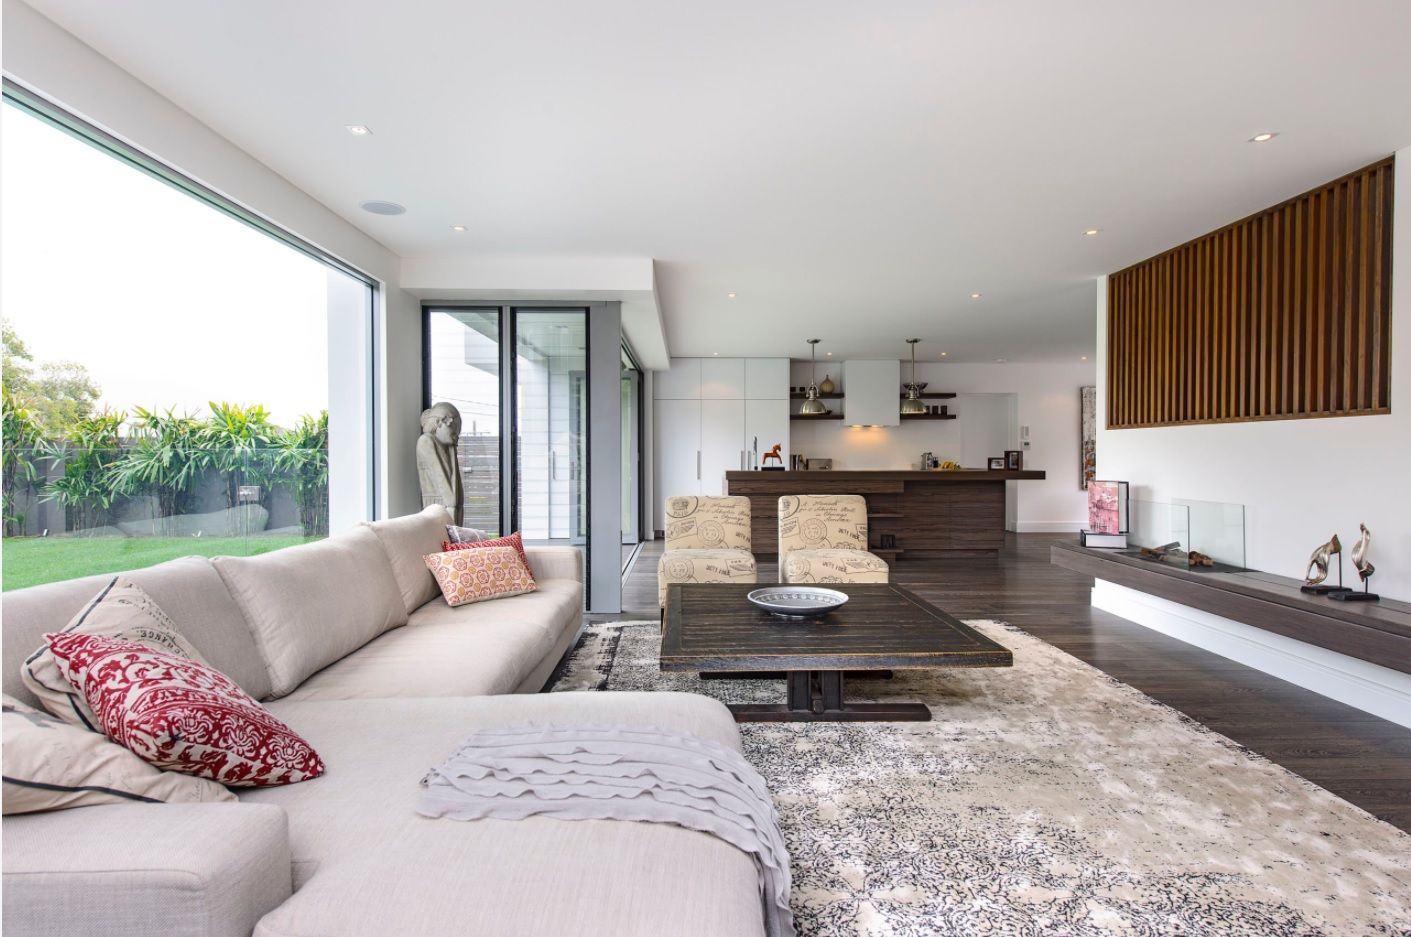 15+ Living Room Lounge Decoration Photos. Gray textured rug in the open layout interior with angular upholstered sofa